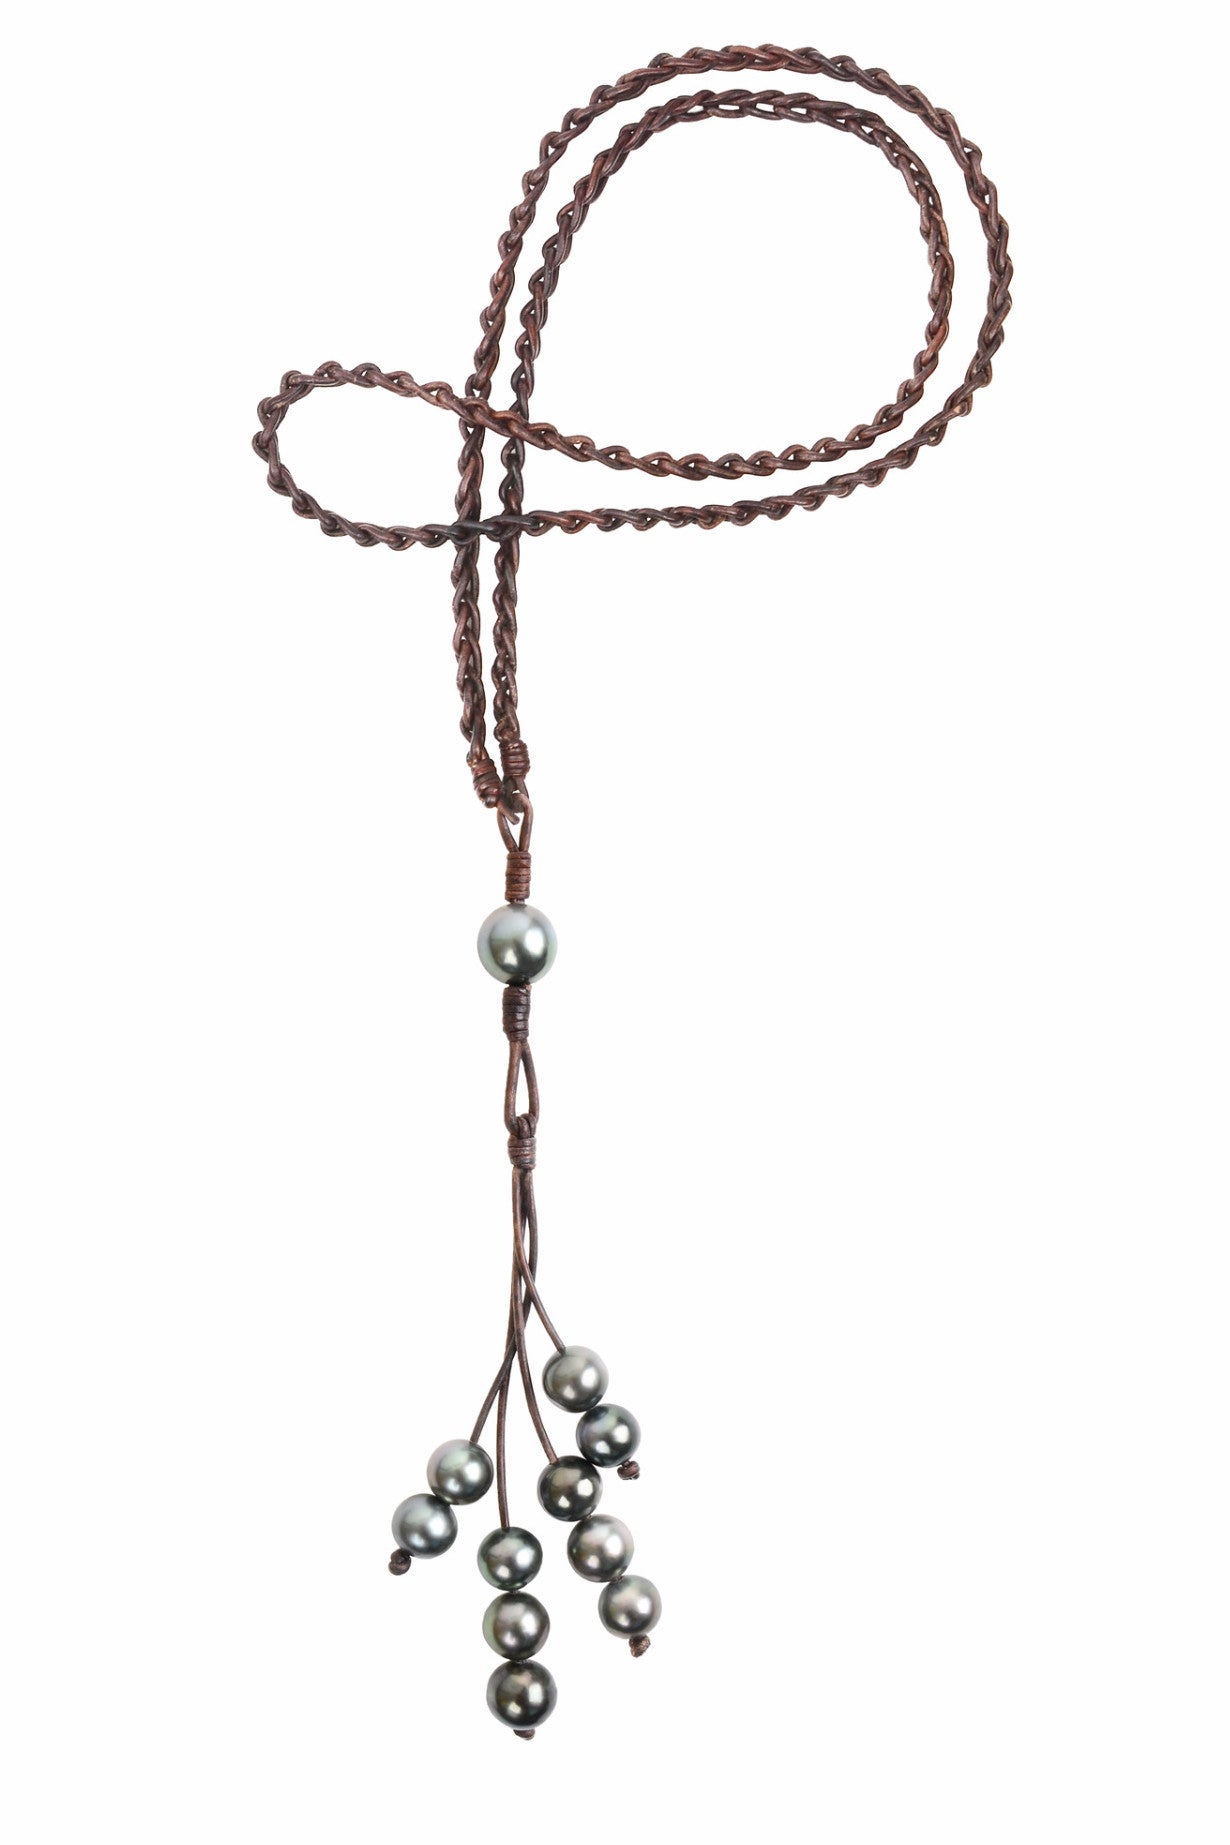 Eternity Necklace, Tahitian - Hottest Designer Pearl and Leather Jewelry | VINCENT PEACH